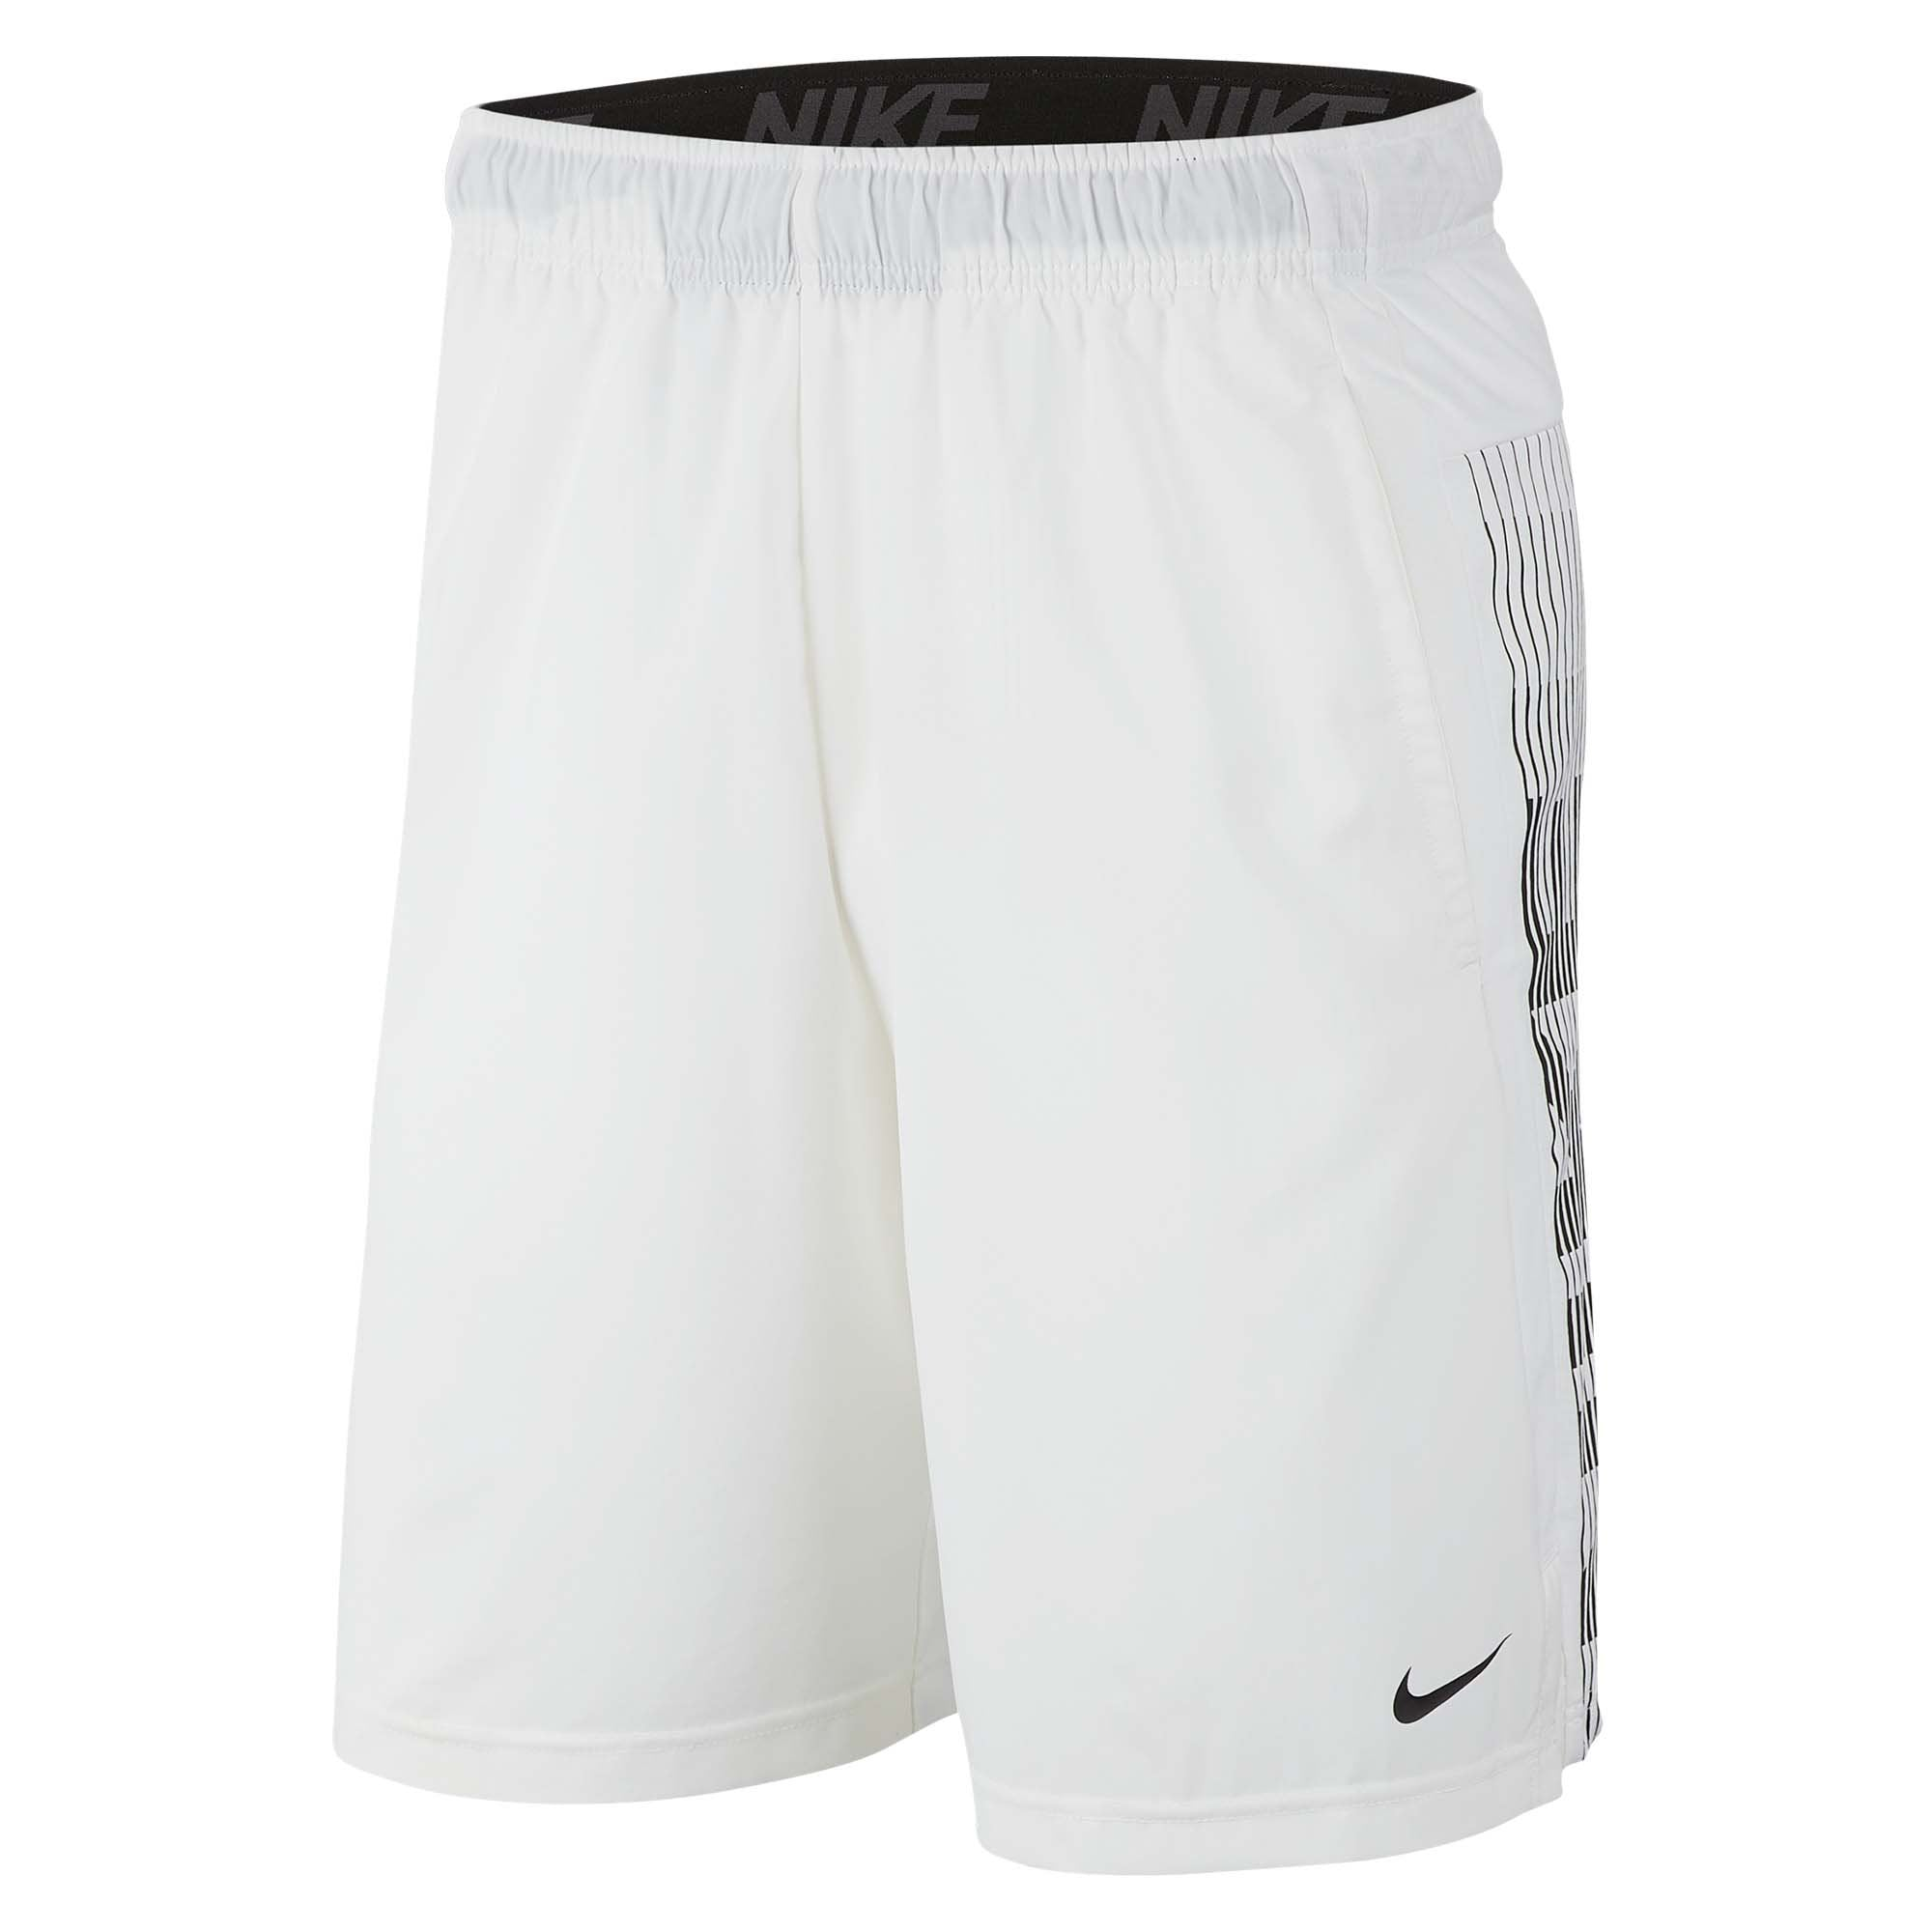 24655aaef1be7 Buy Nike Men Dry-Fit 4.0 Shorts Online in Singapore | Royal Sporting House